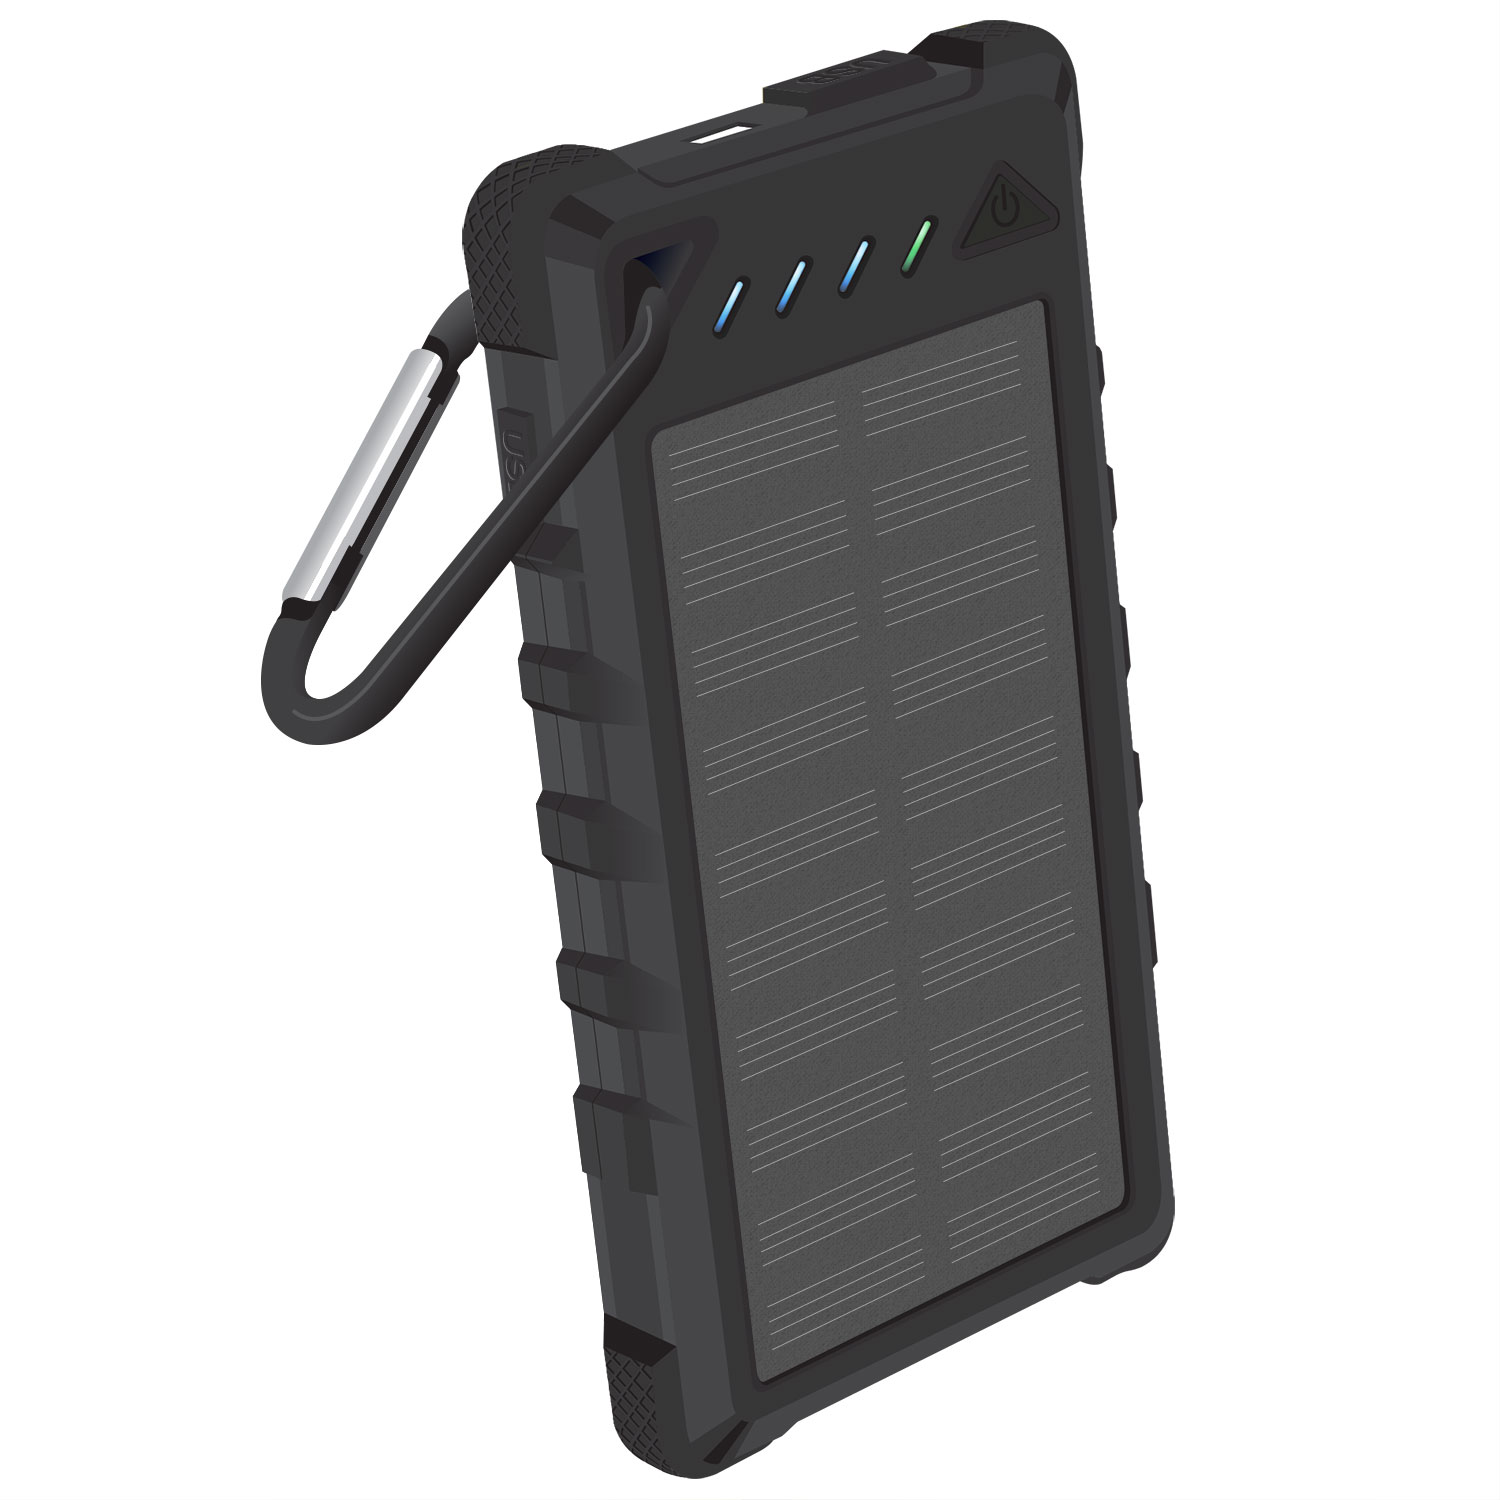 LG G Vista 2 Solar Powered Portable PowerBank Black